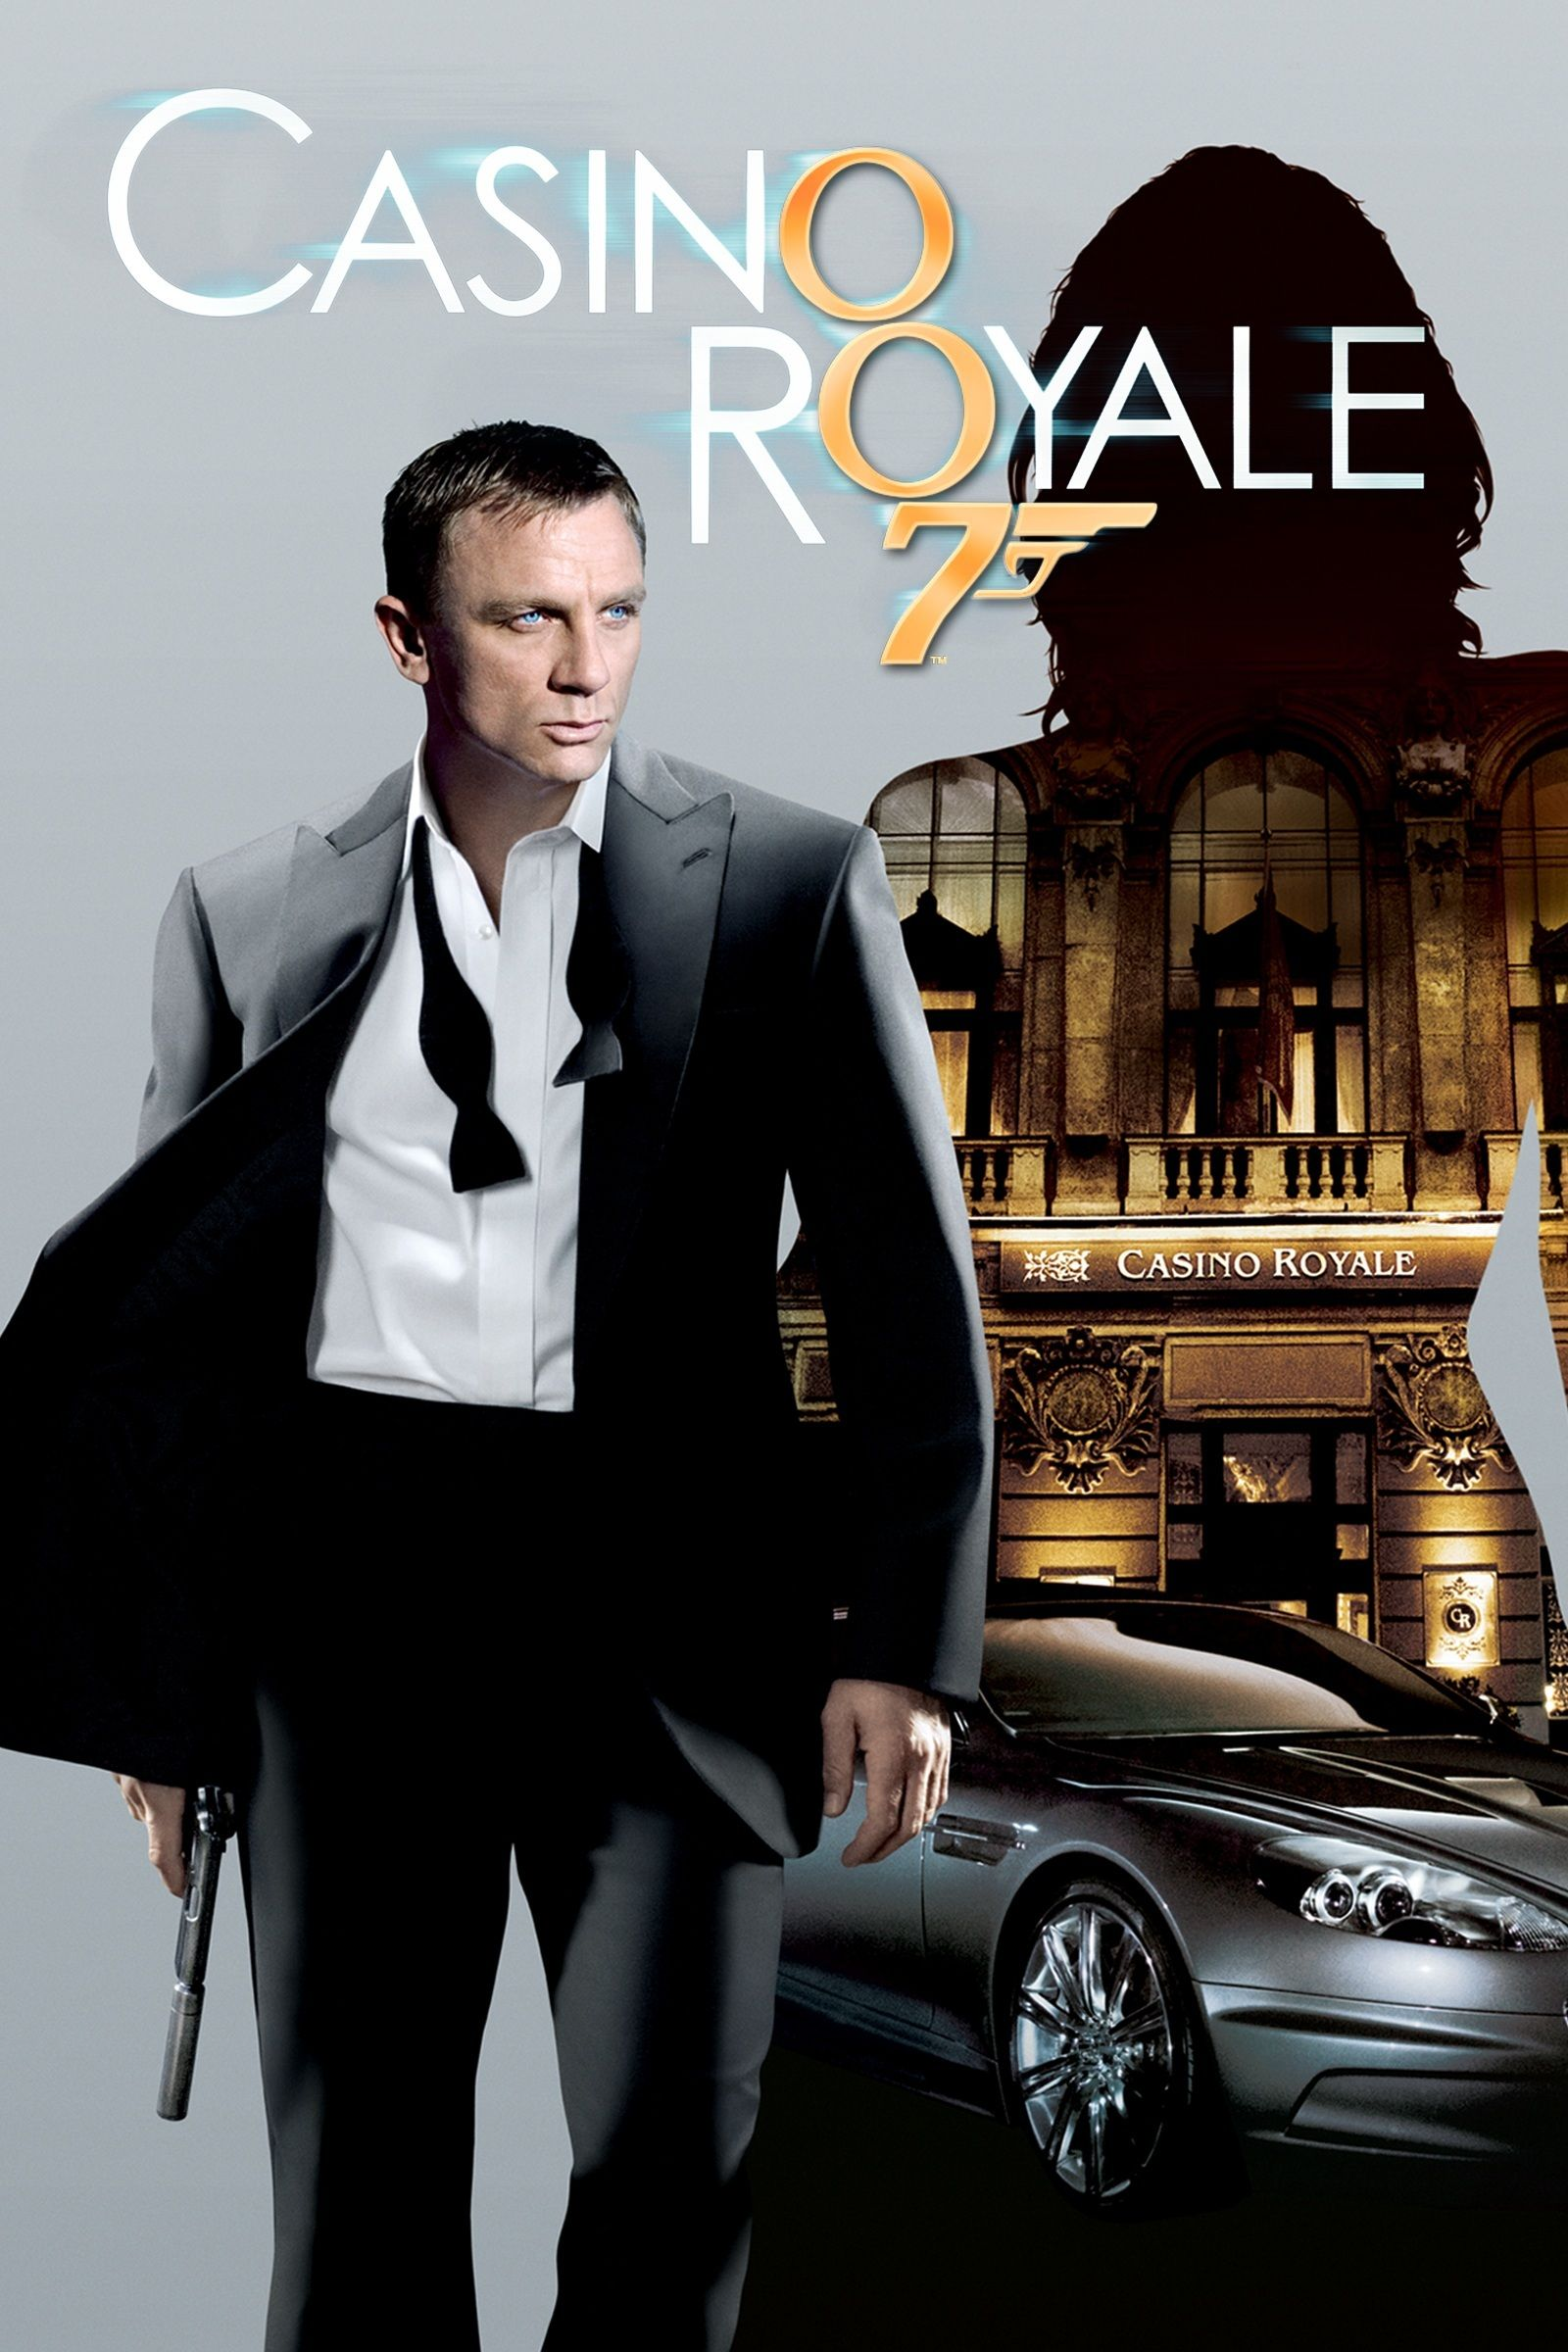 Next bond movie after casino royale basketball college gambling system